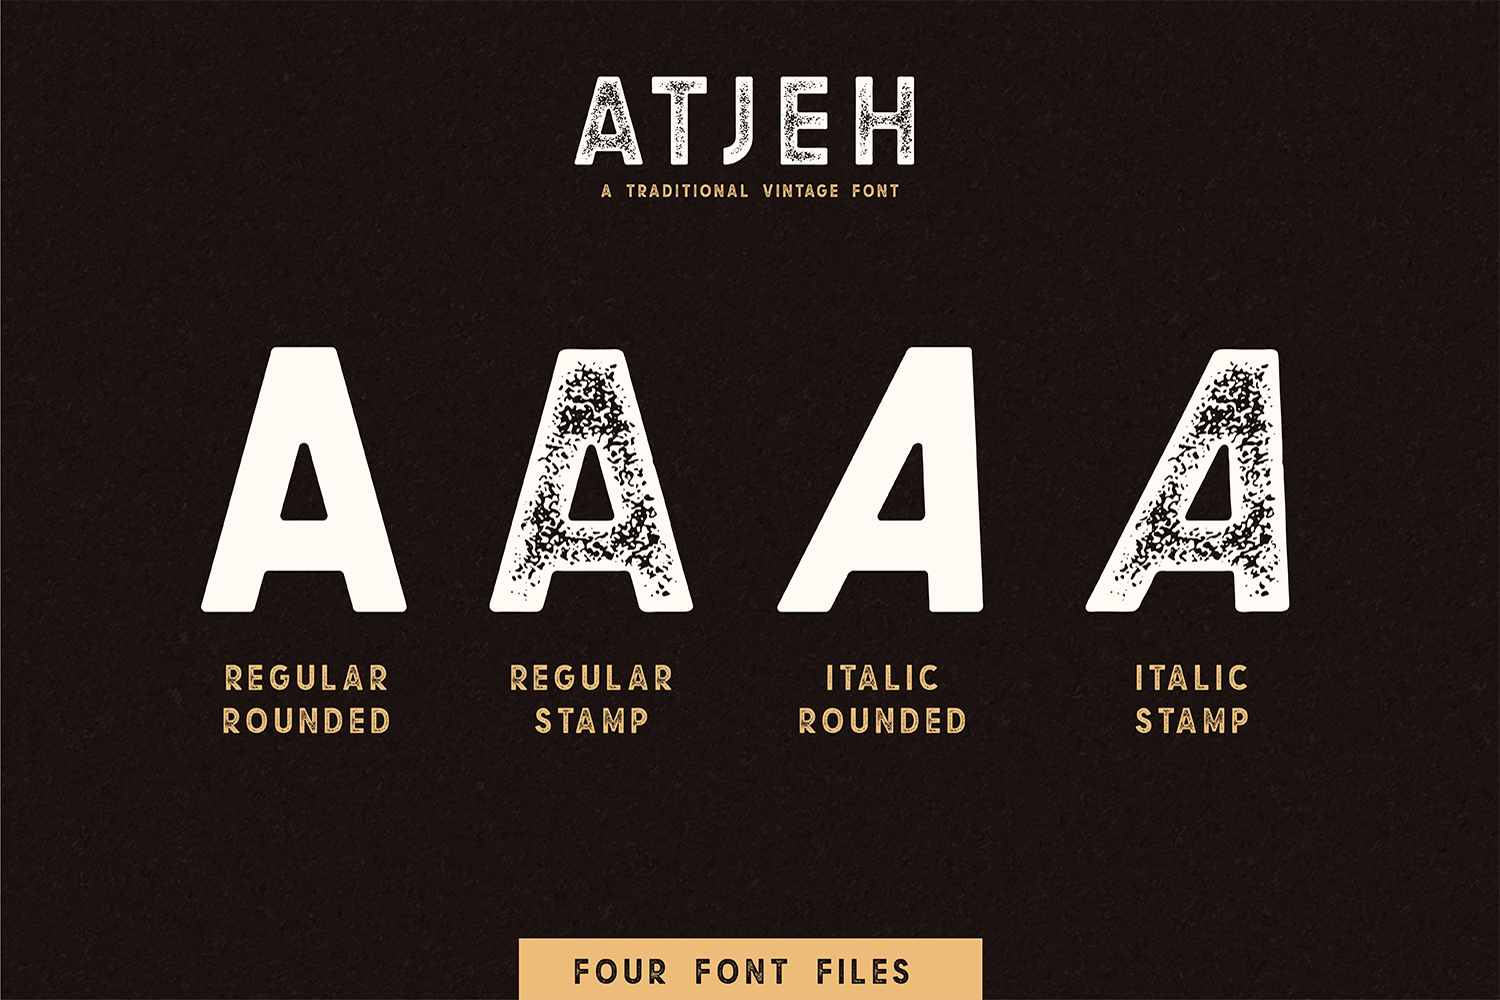 Atjeh - A Traditional Vintage Font | 4 Font Files example image 3